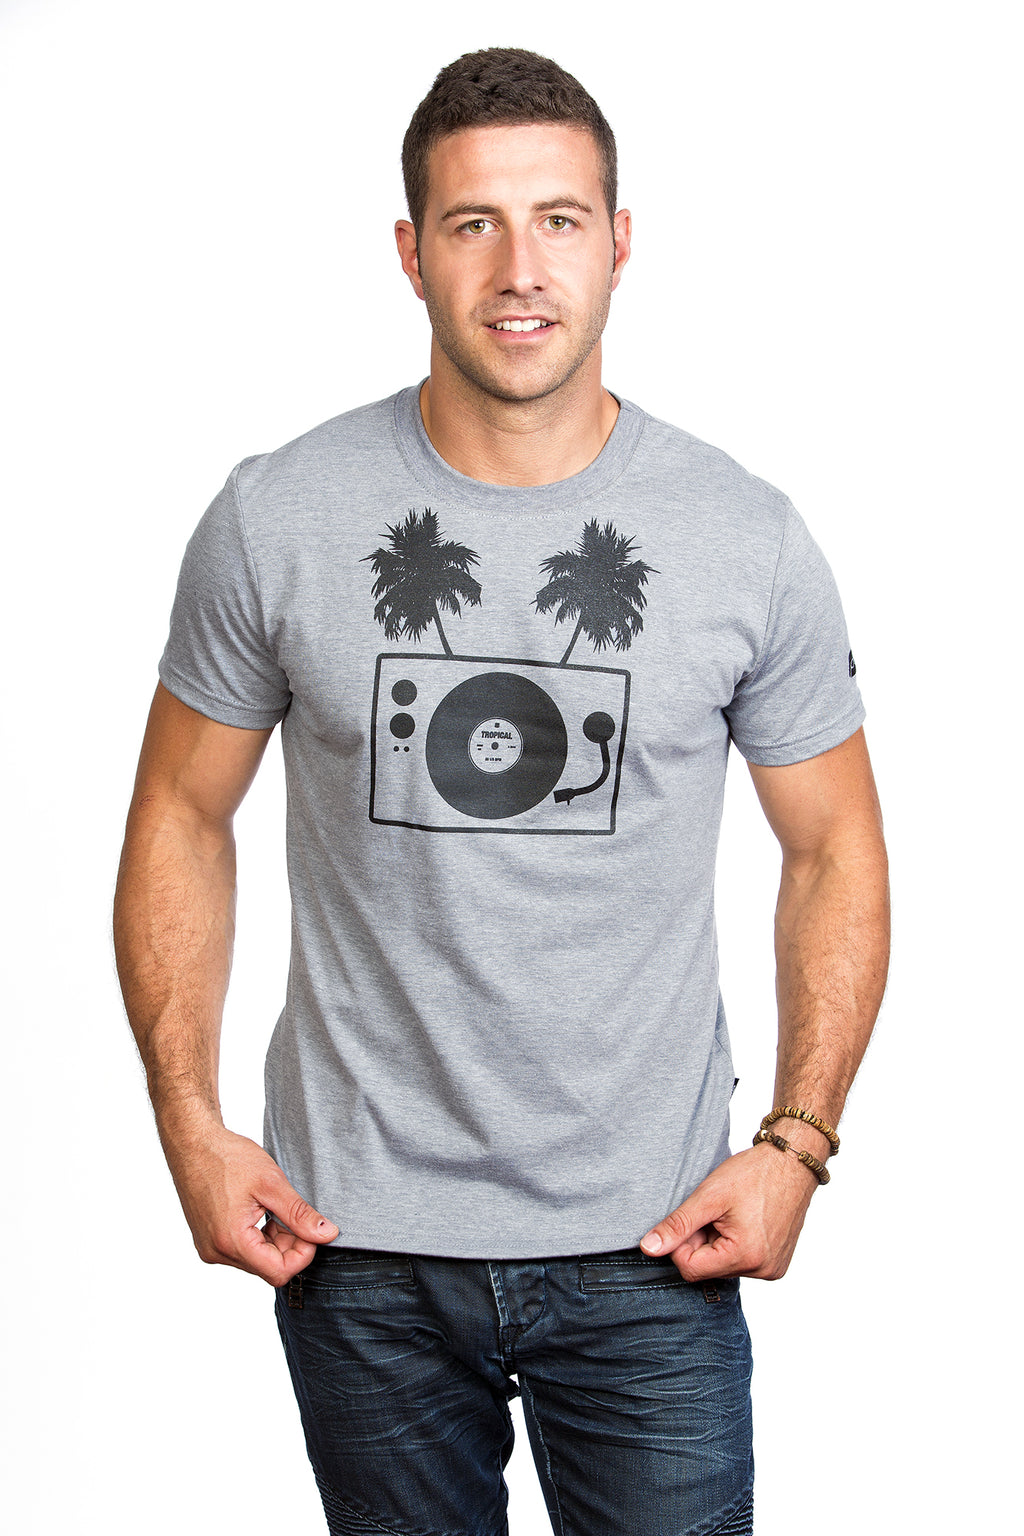 Table tournante turntable palm tree T-shirt DJ